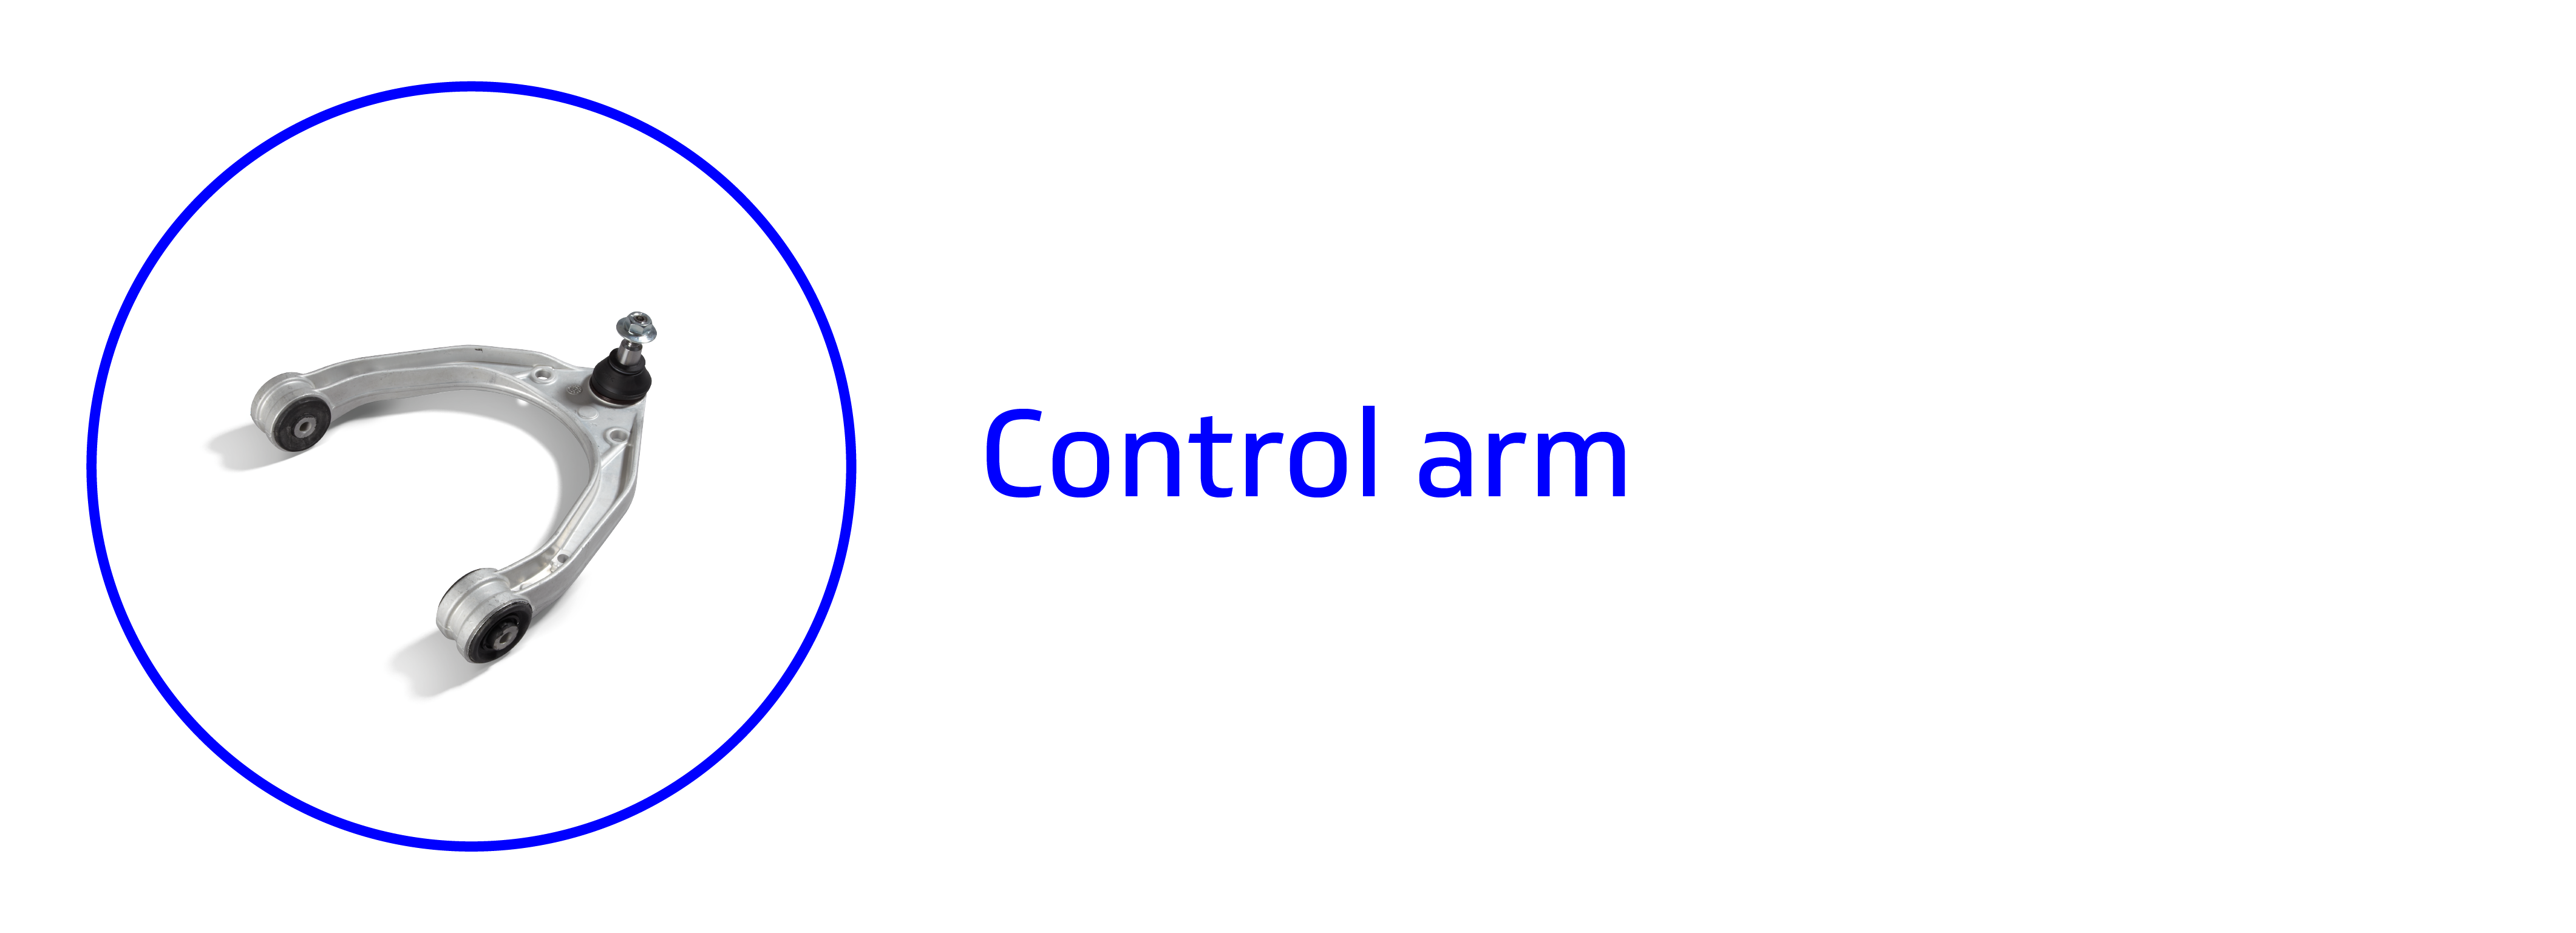 Banner showing a control arm